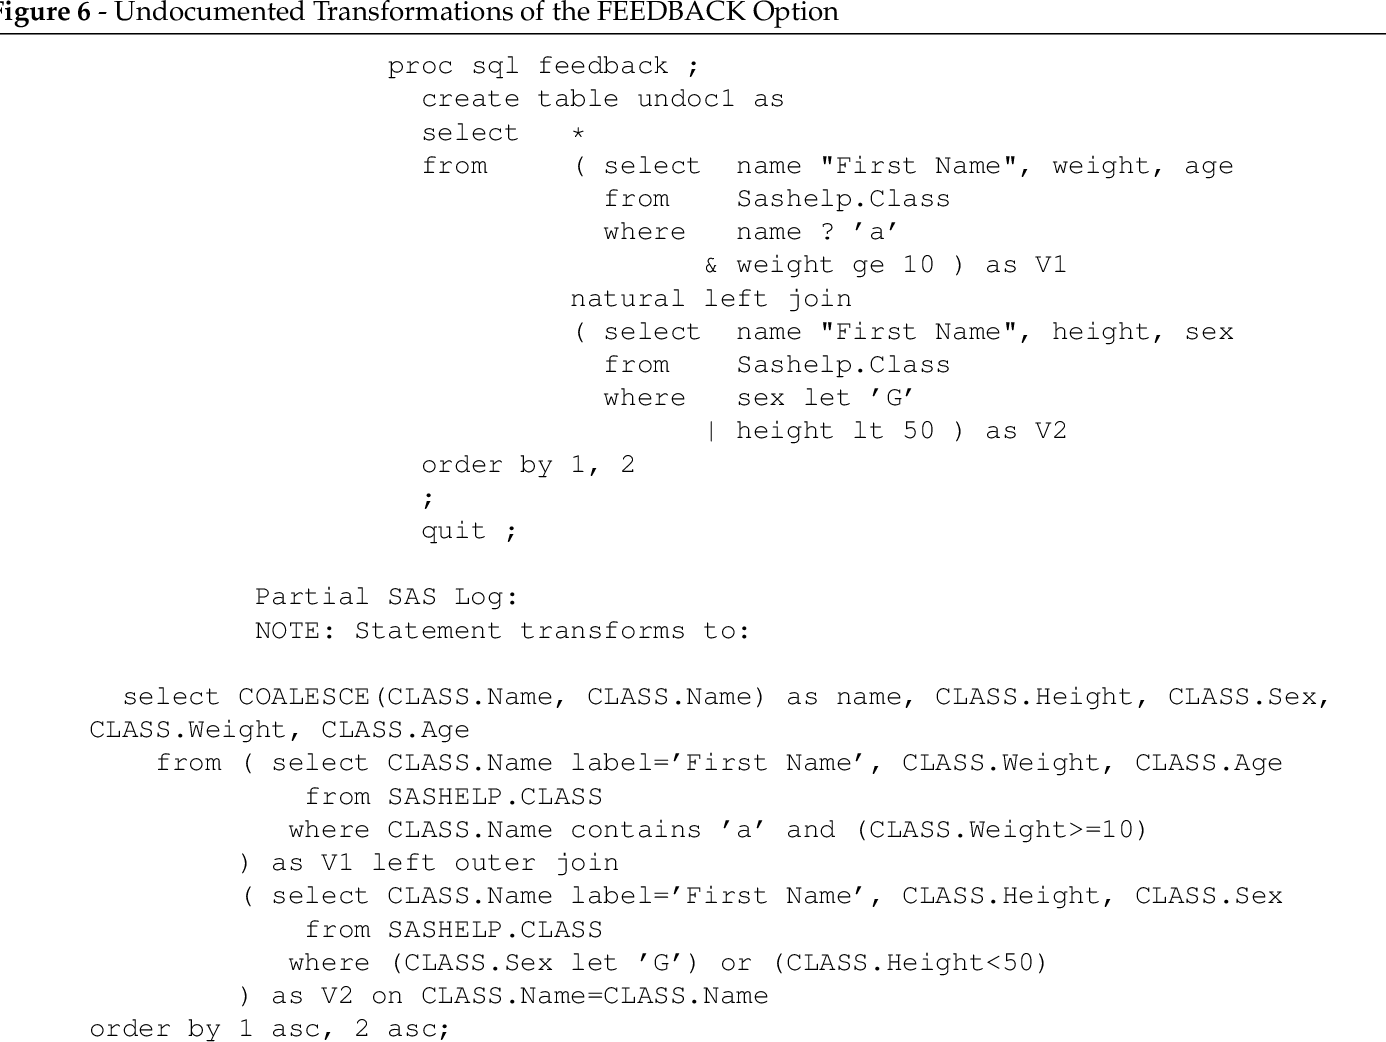 Figure 4 from A Closer Look at PROC SQL's FEEDBACK Option